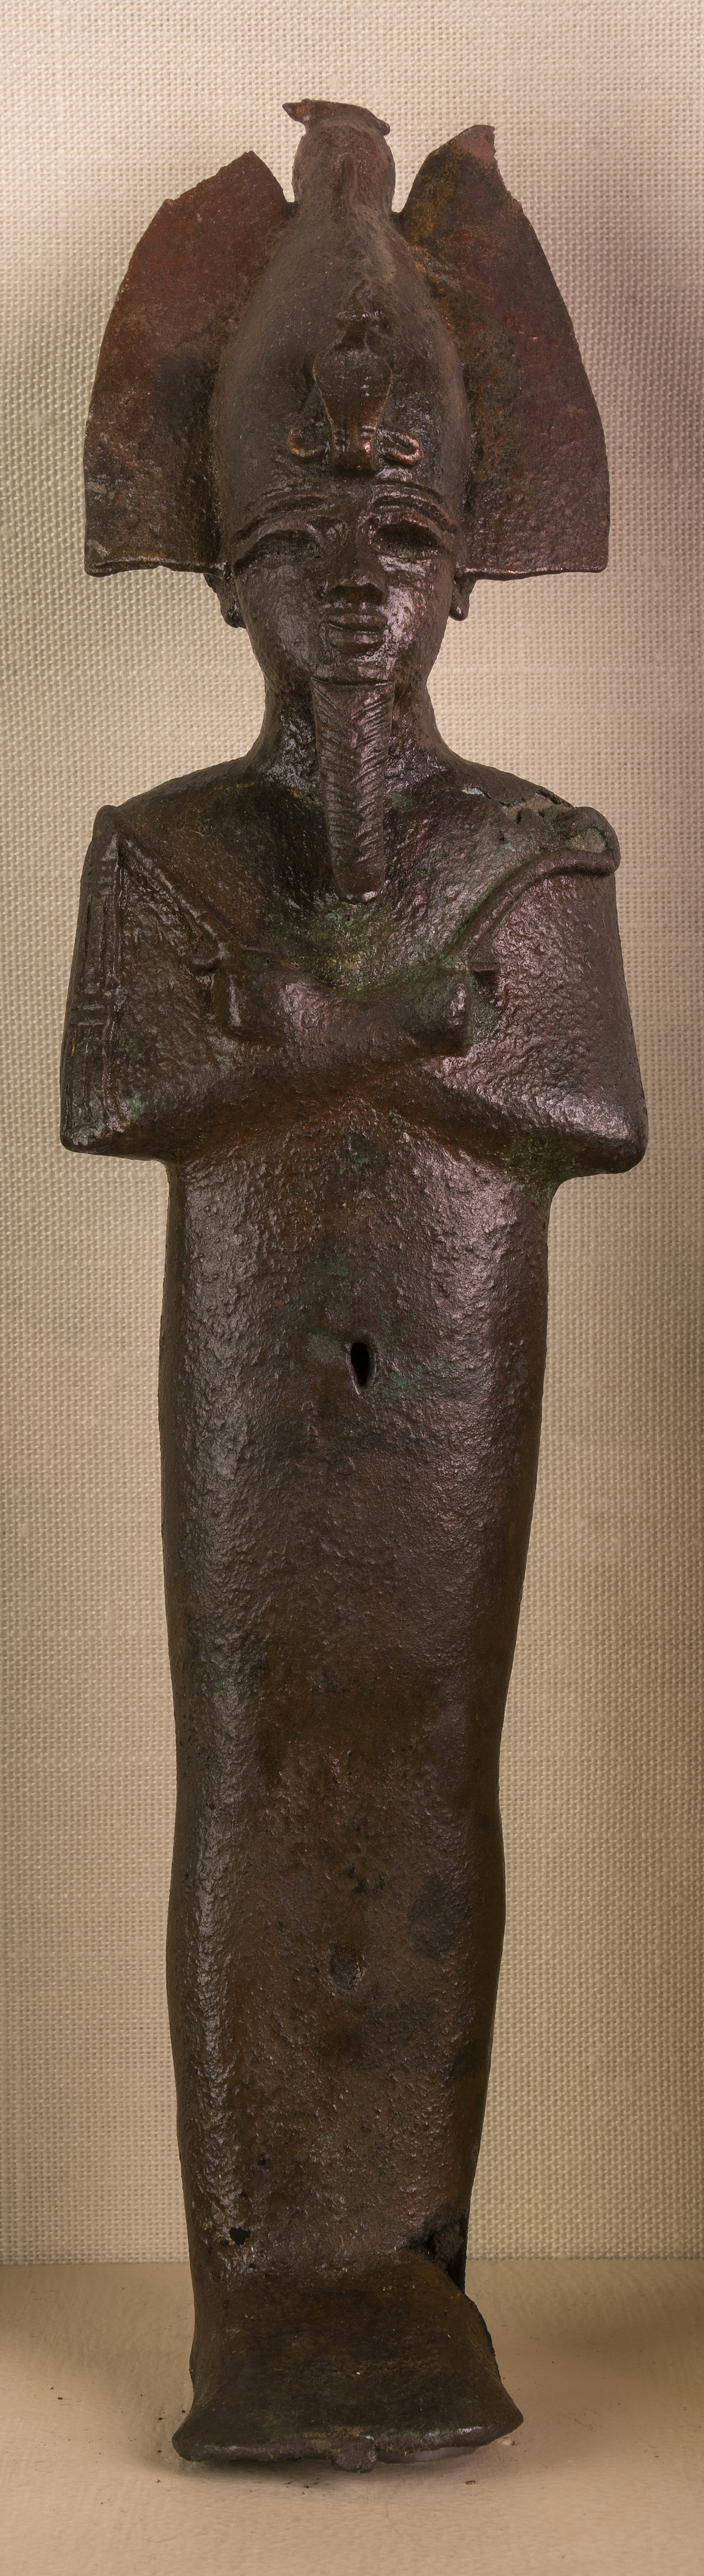 Figure 5: Bronze votive statuette of Osiris (E74). The god is shown mummiform, wearing his usual crown and holding the crook and flail as symbols of his kingship.